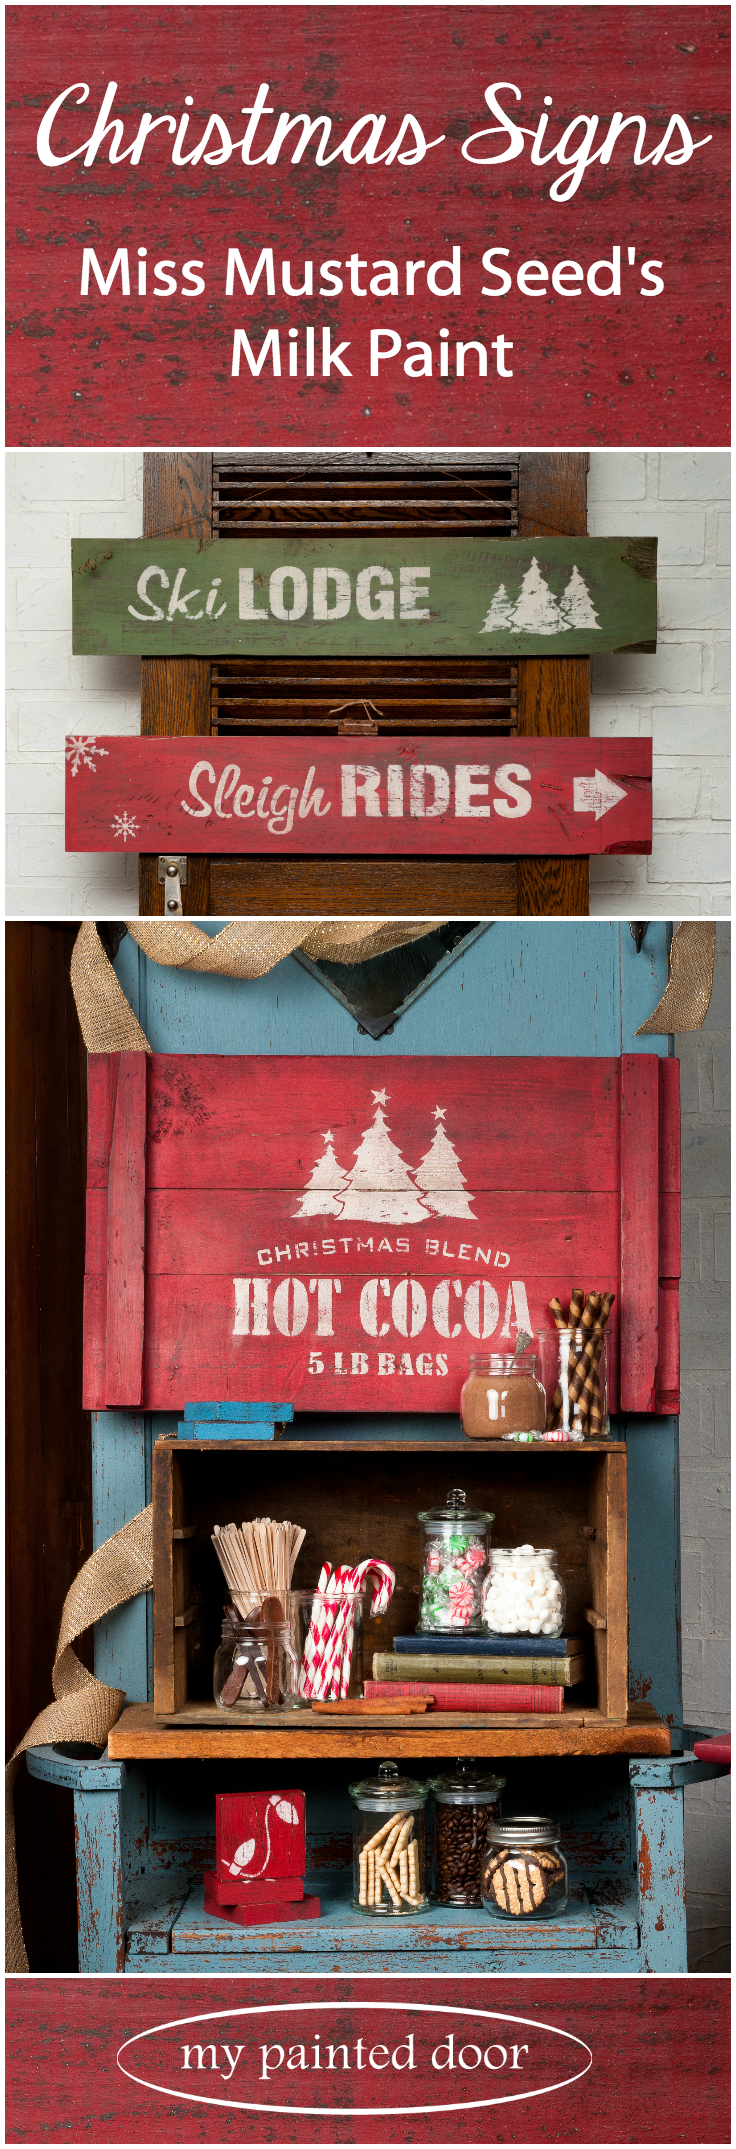 Visit My Painted Door for some great ideas for creating Christmas Signs using Miss Mustard Seed's Milk Paint. These signs are made from new wood. With milk paint it is easy to create an authentic looking vintage sign by distressing, layering colours and more. We also have workshops available!